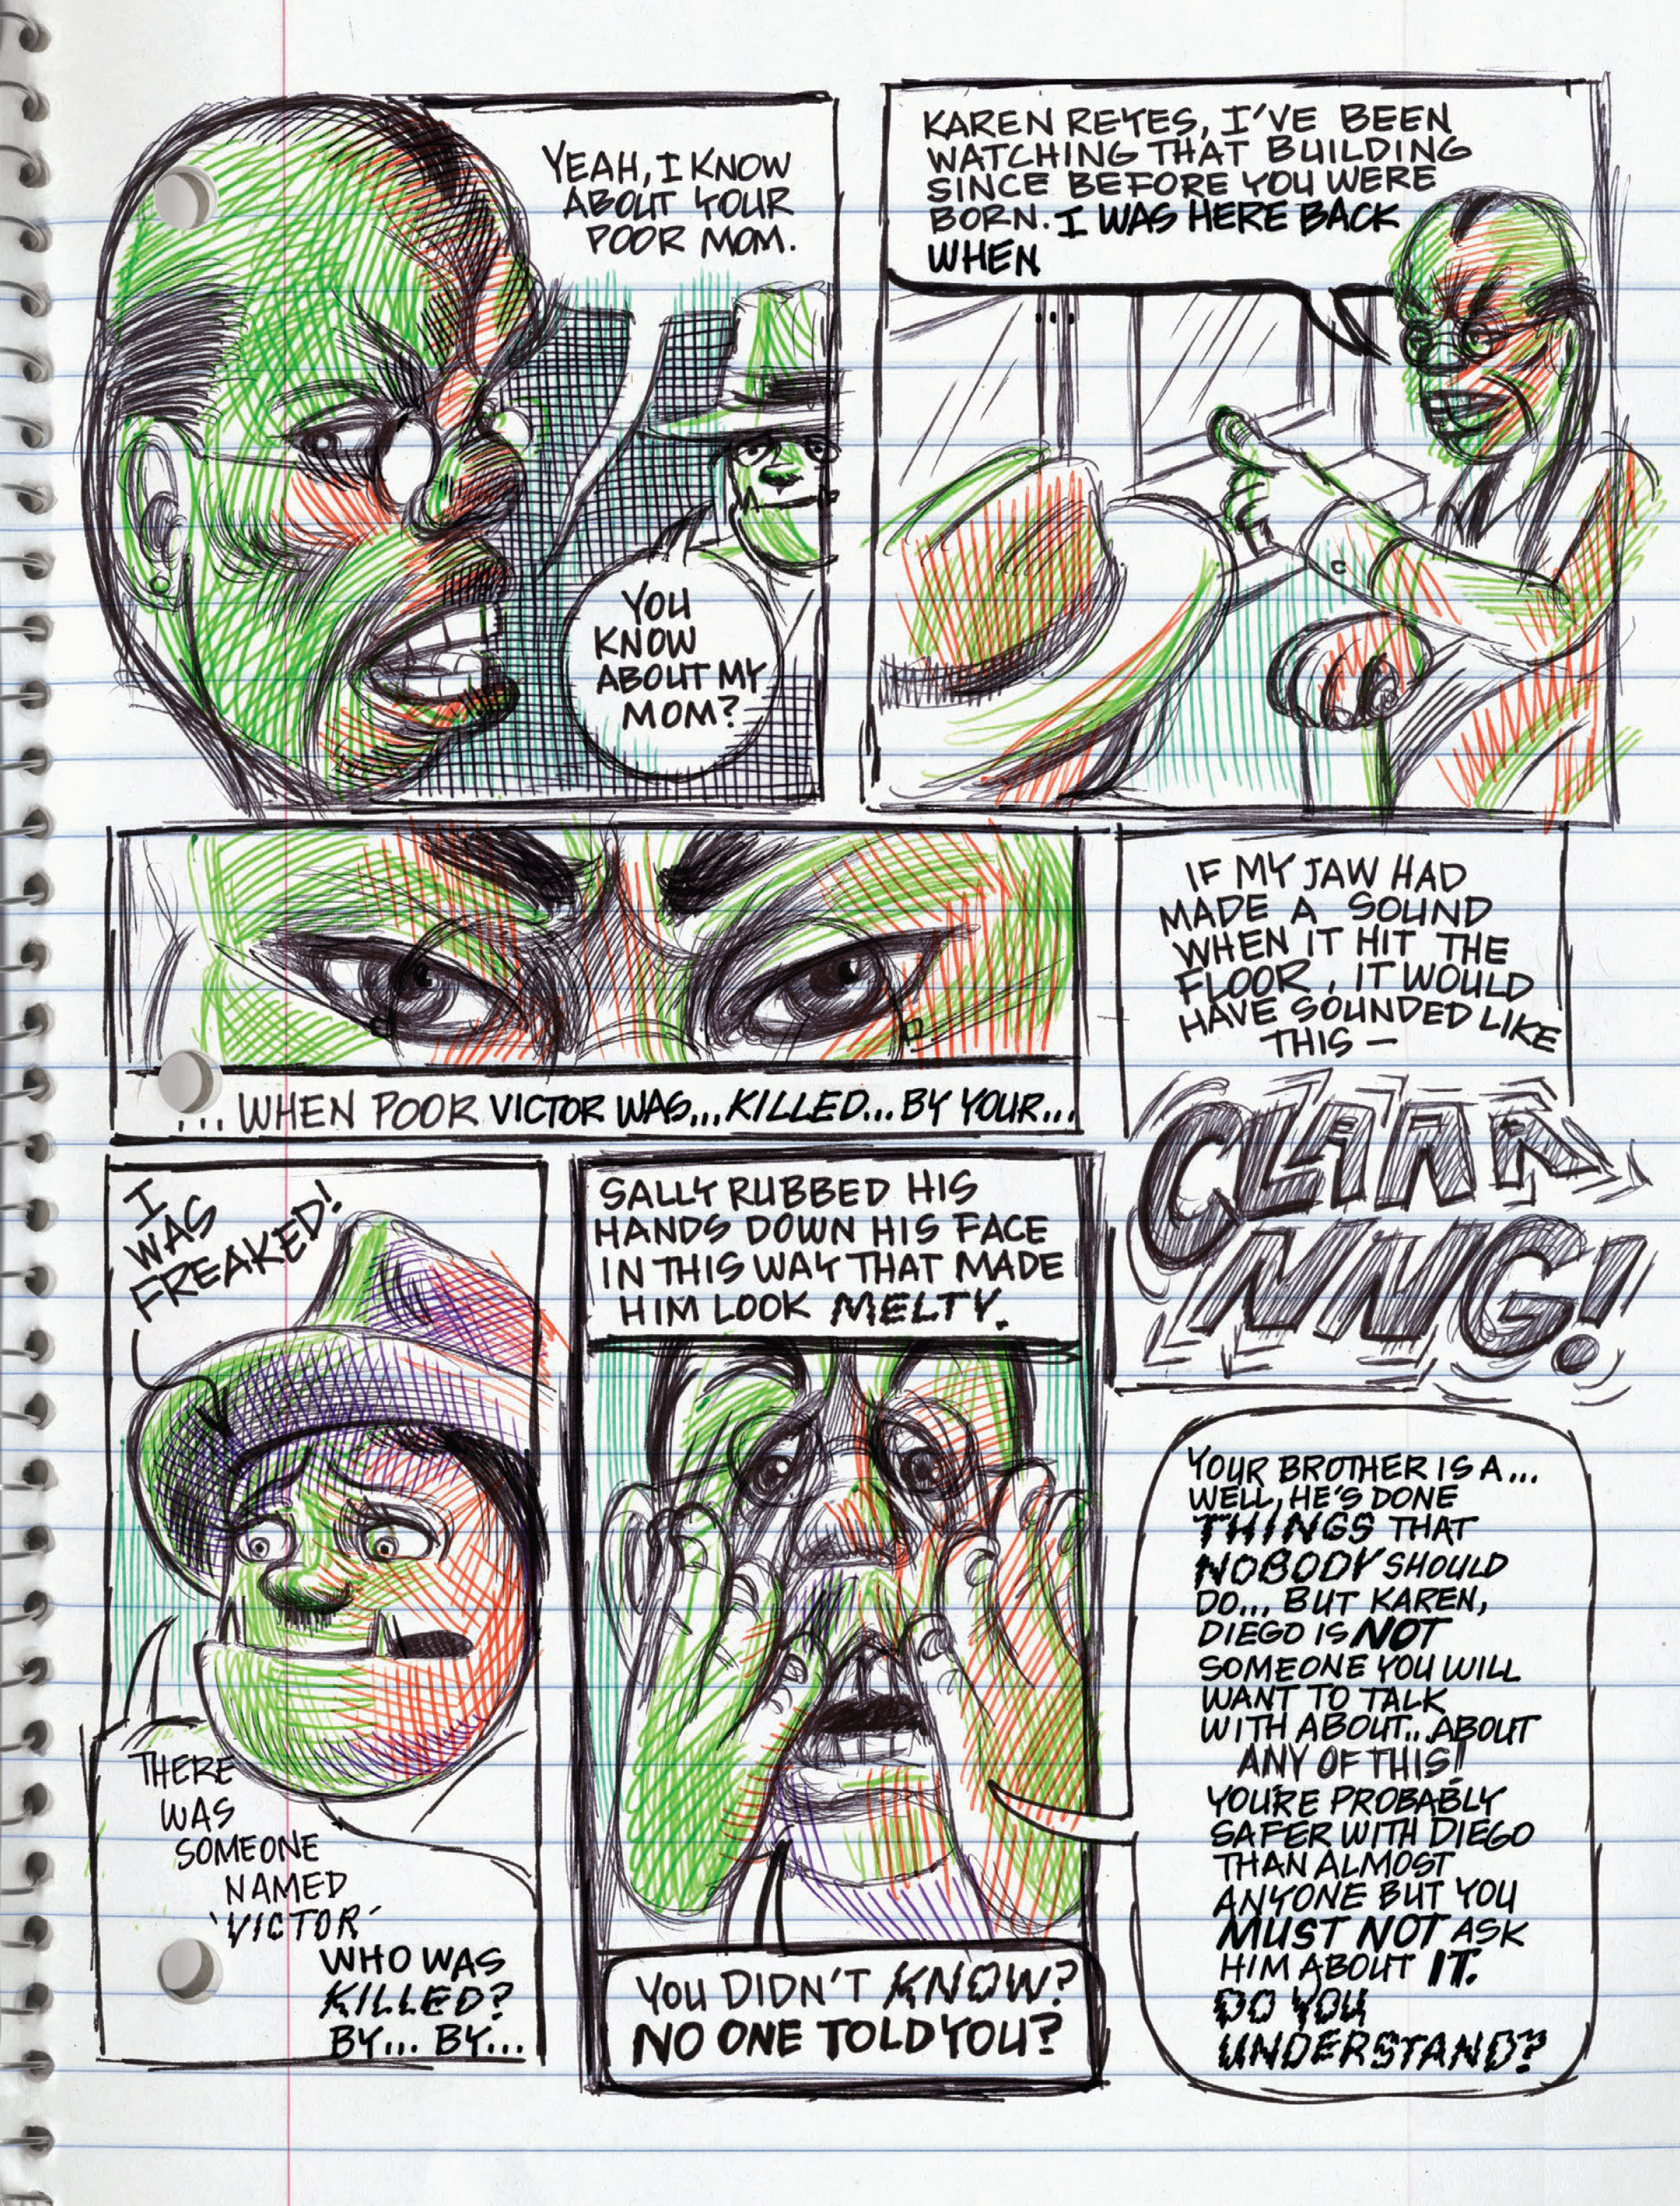 Read online My Favorite Thing is Monsters comic -  Issue #1.5 - 166